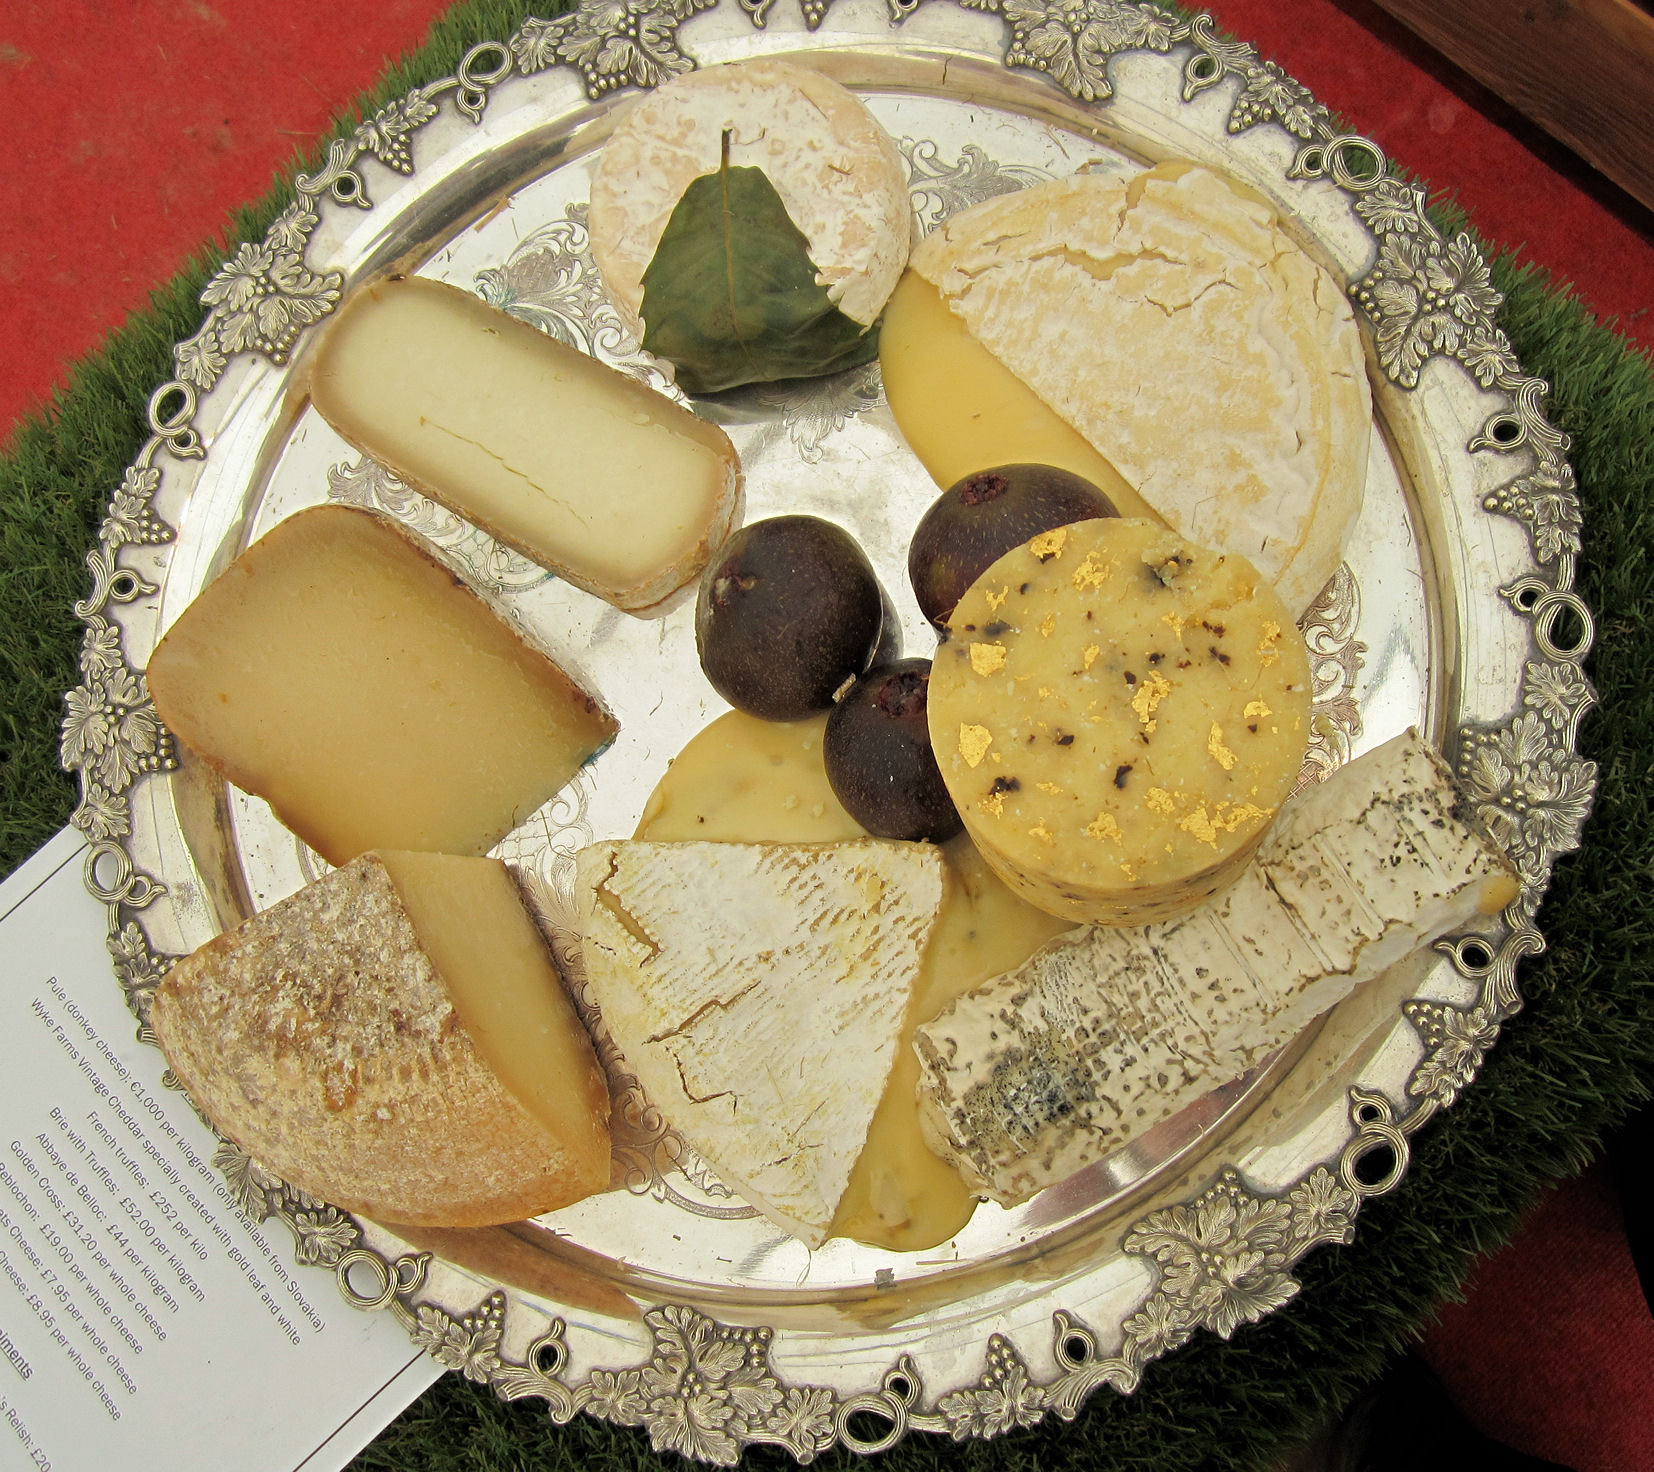 The Worlds Most Exspensive Cheeseboard!